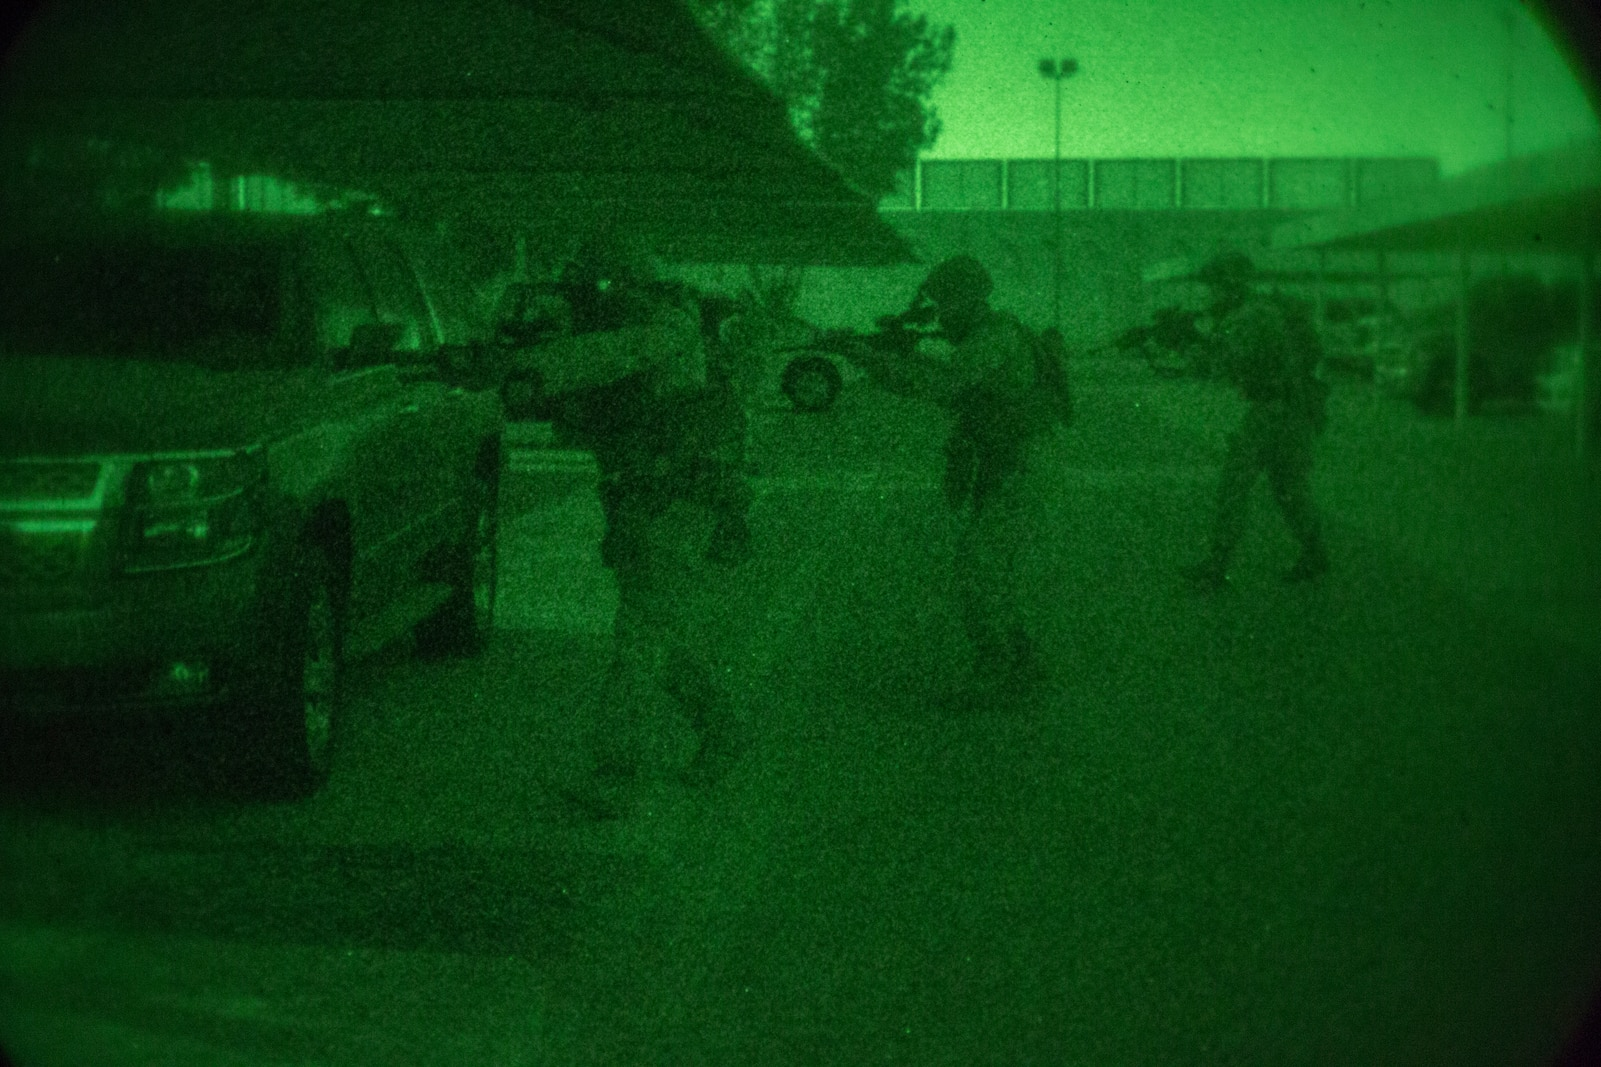 FASTCENT Marines conduct simulated disaster drills at the U.S. Embassy in Qatar